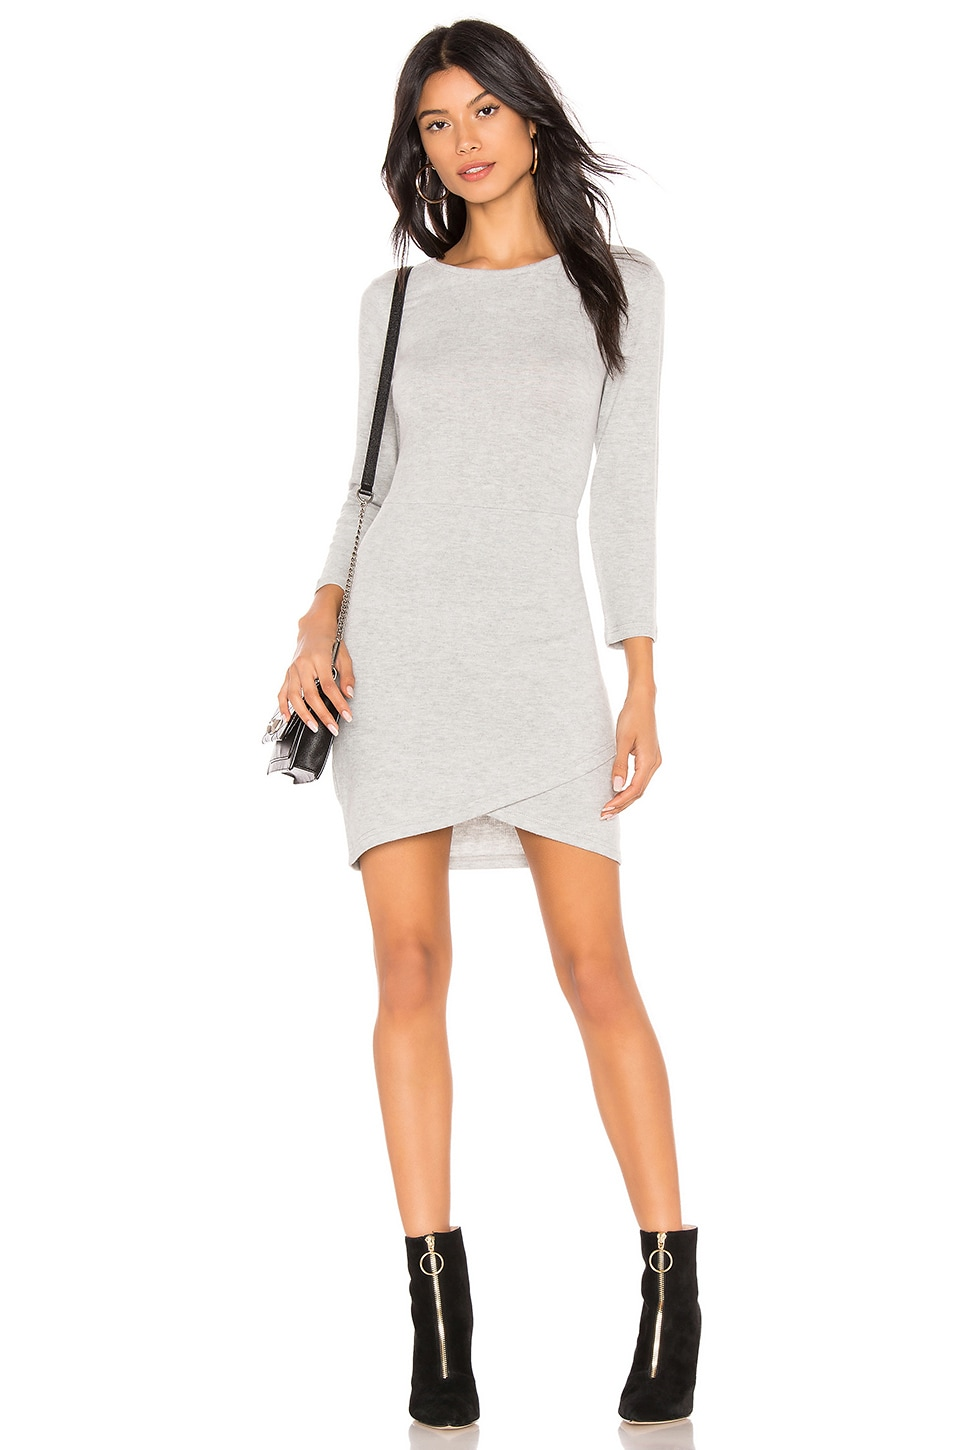 BB Dakota JACK by BB Dakota Brush Up On It Dress in Light Heather Grey